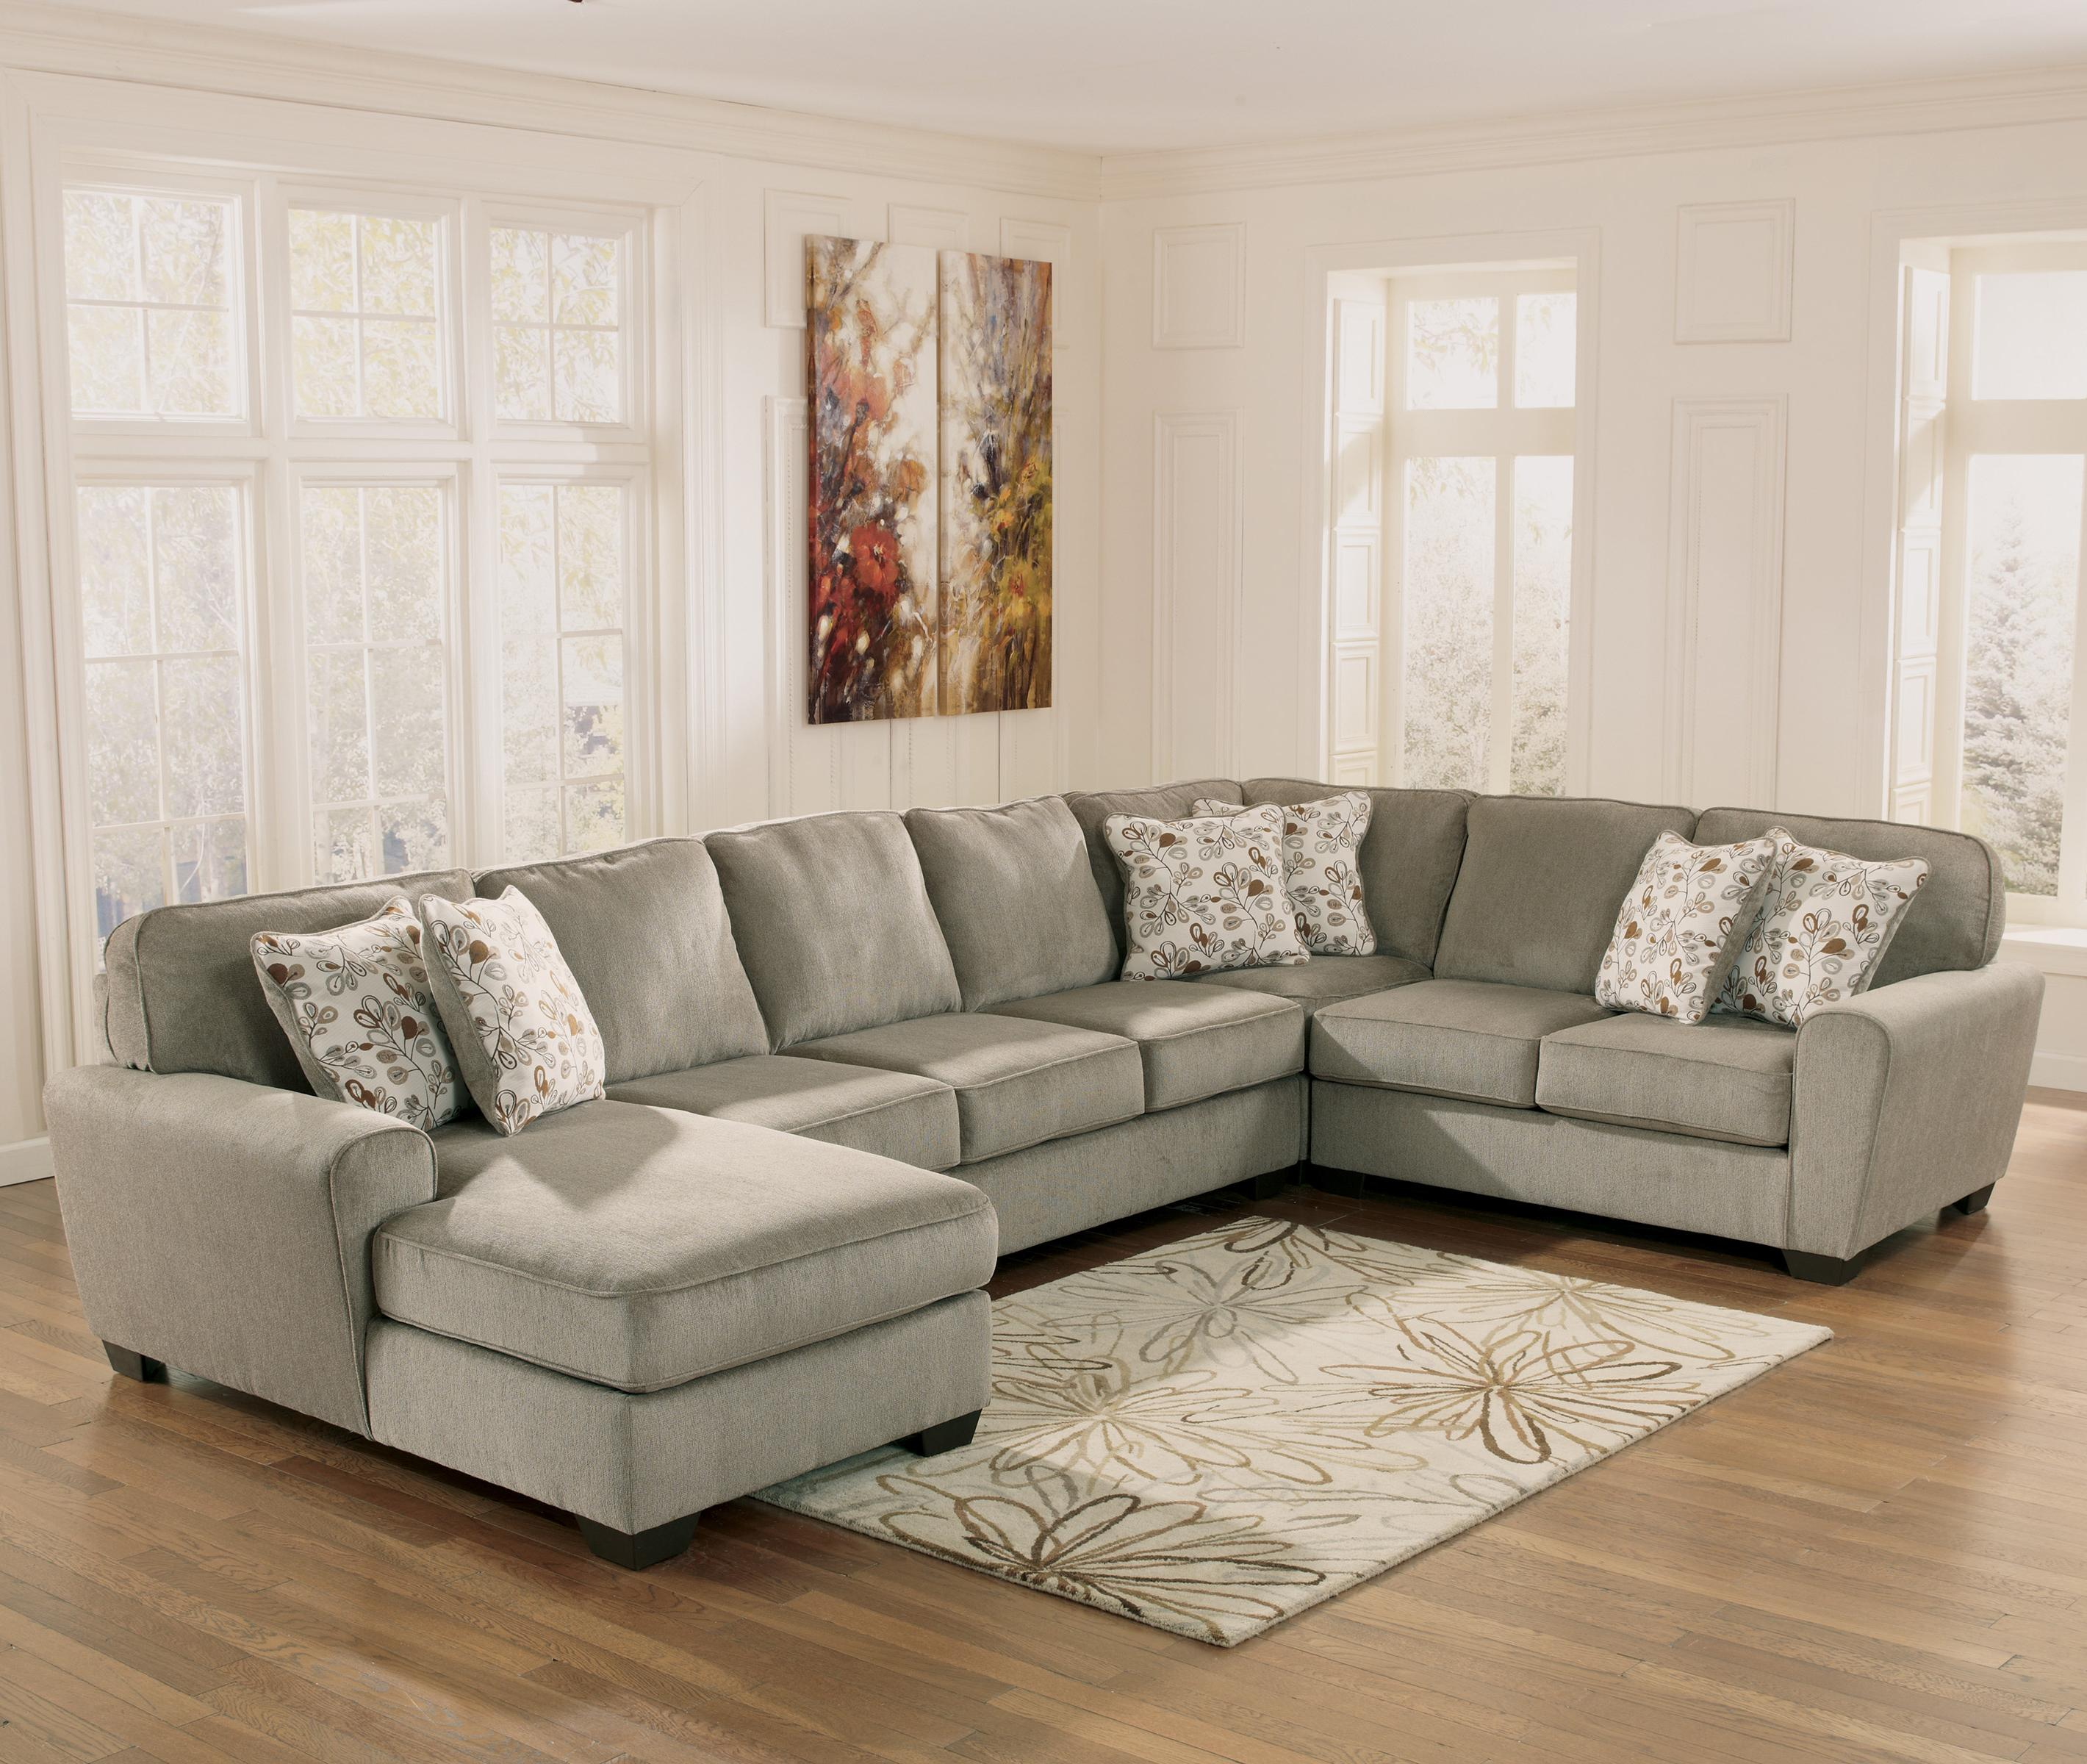 ashley cohes sofa chaise types of sofas images furniture patola park patina 4 piece sectional